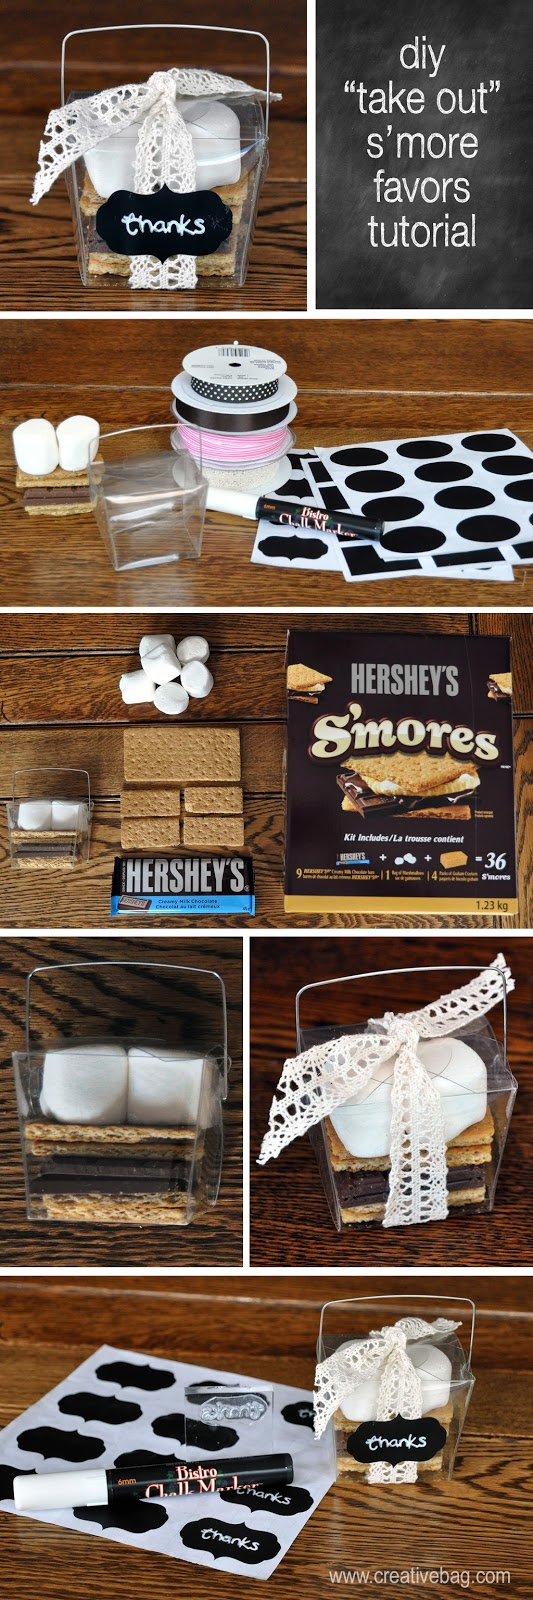 "Lorrie Everitt's diy ""take out box"" s'more favors tutorial"